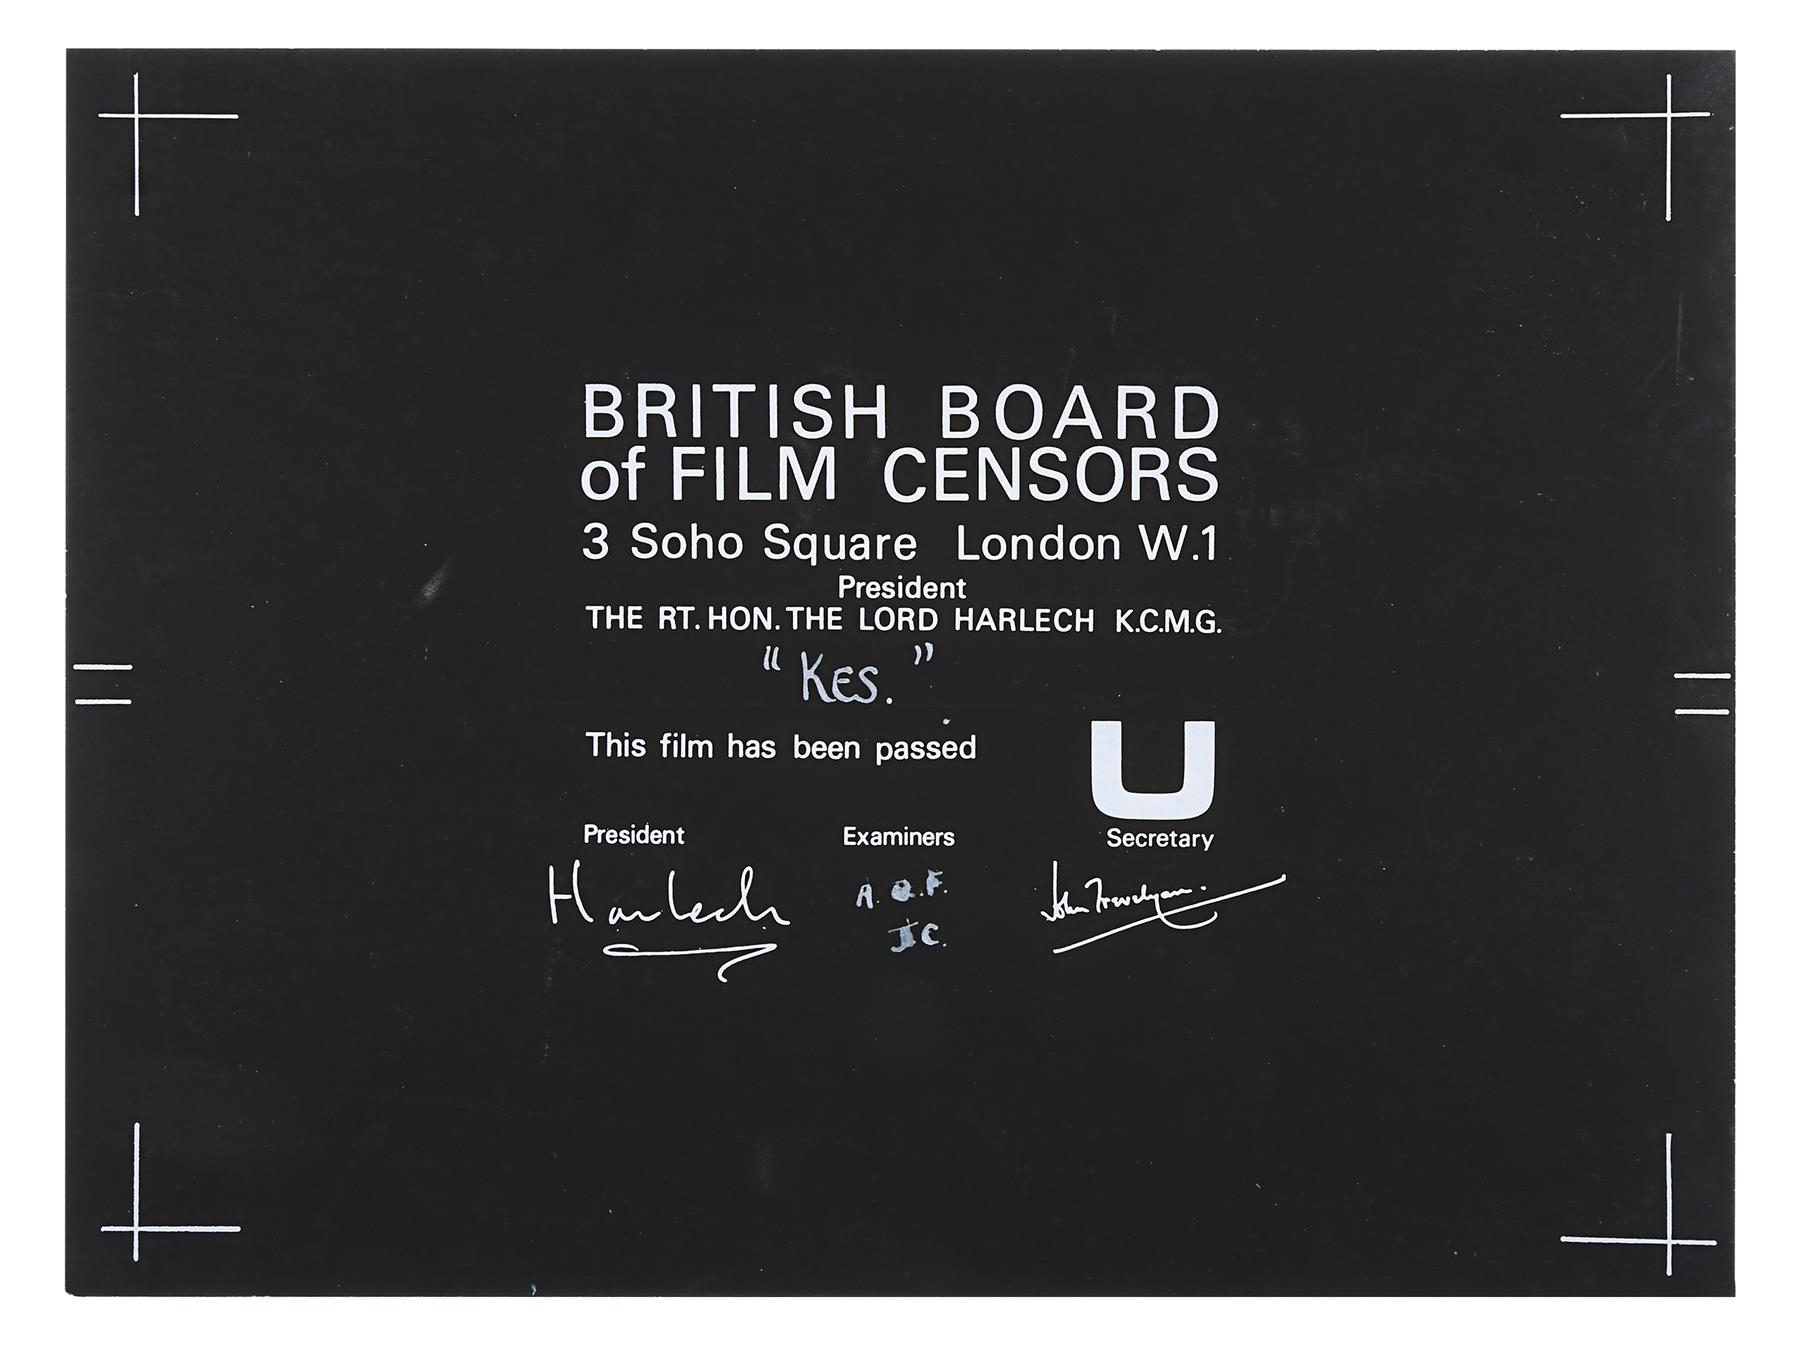 VARIOUS PRODUCTIONS - BBFC Certificates of British Classics - Image 6 of 6